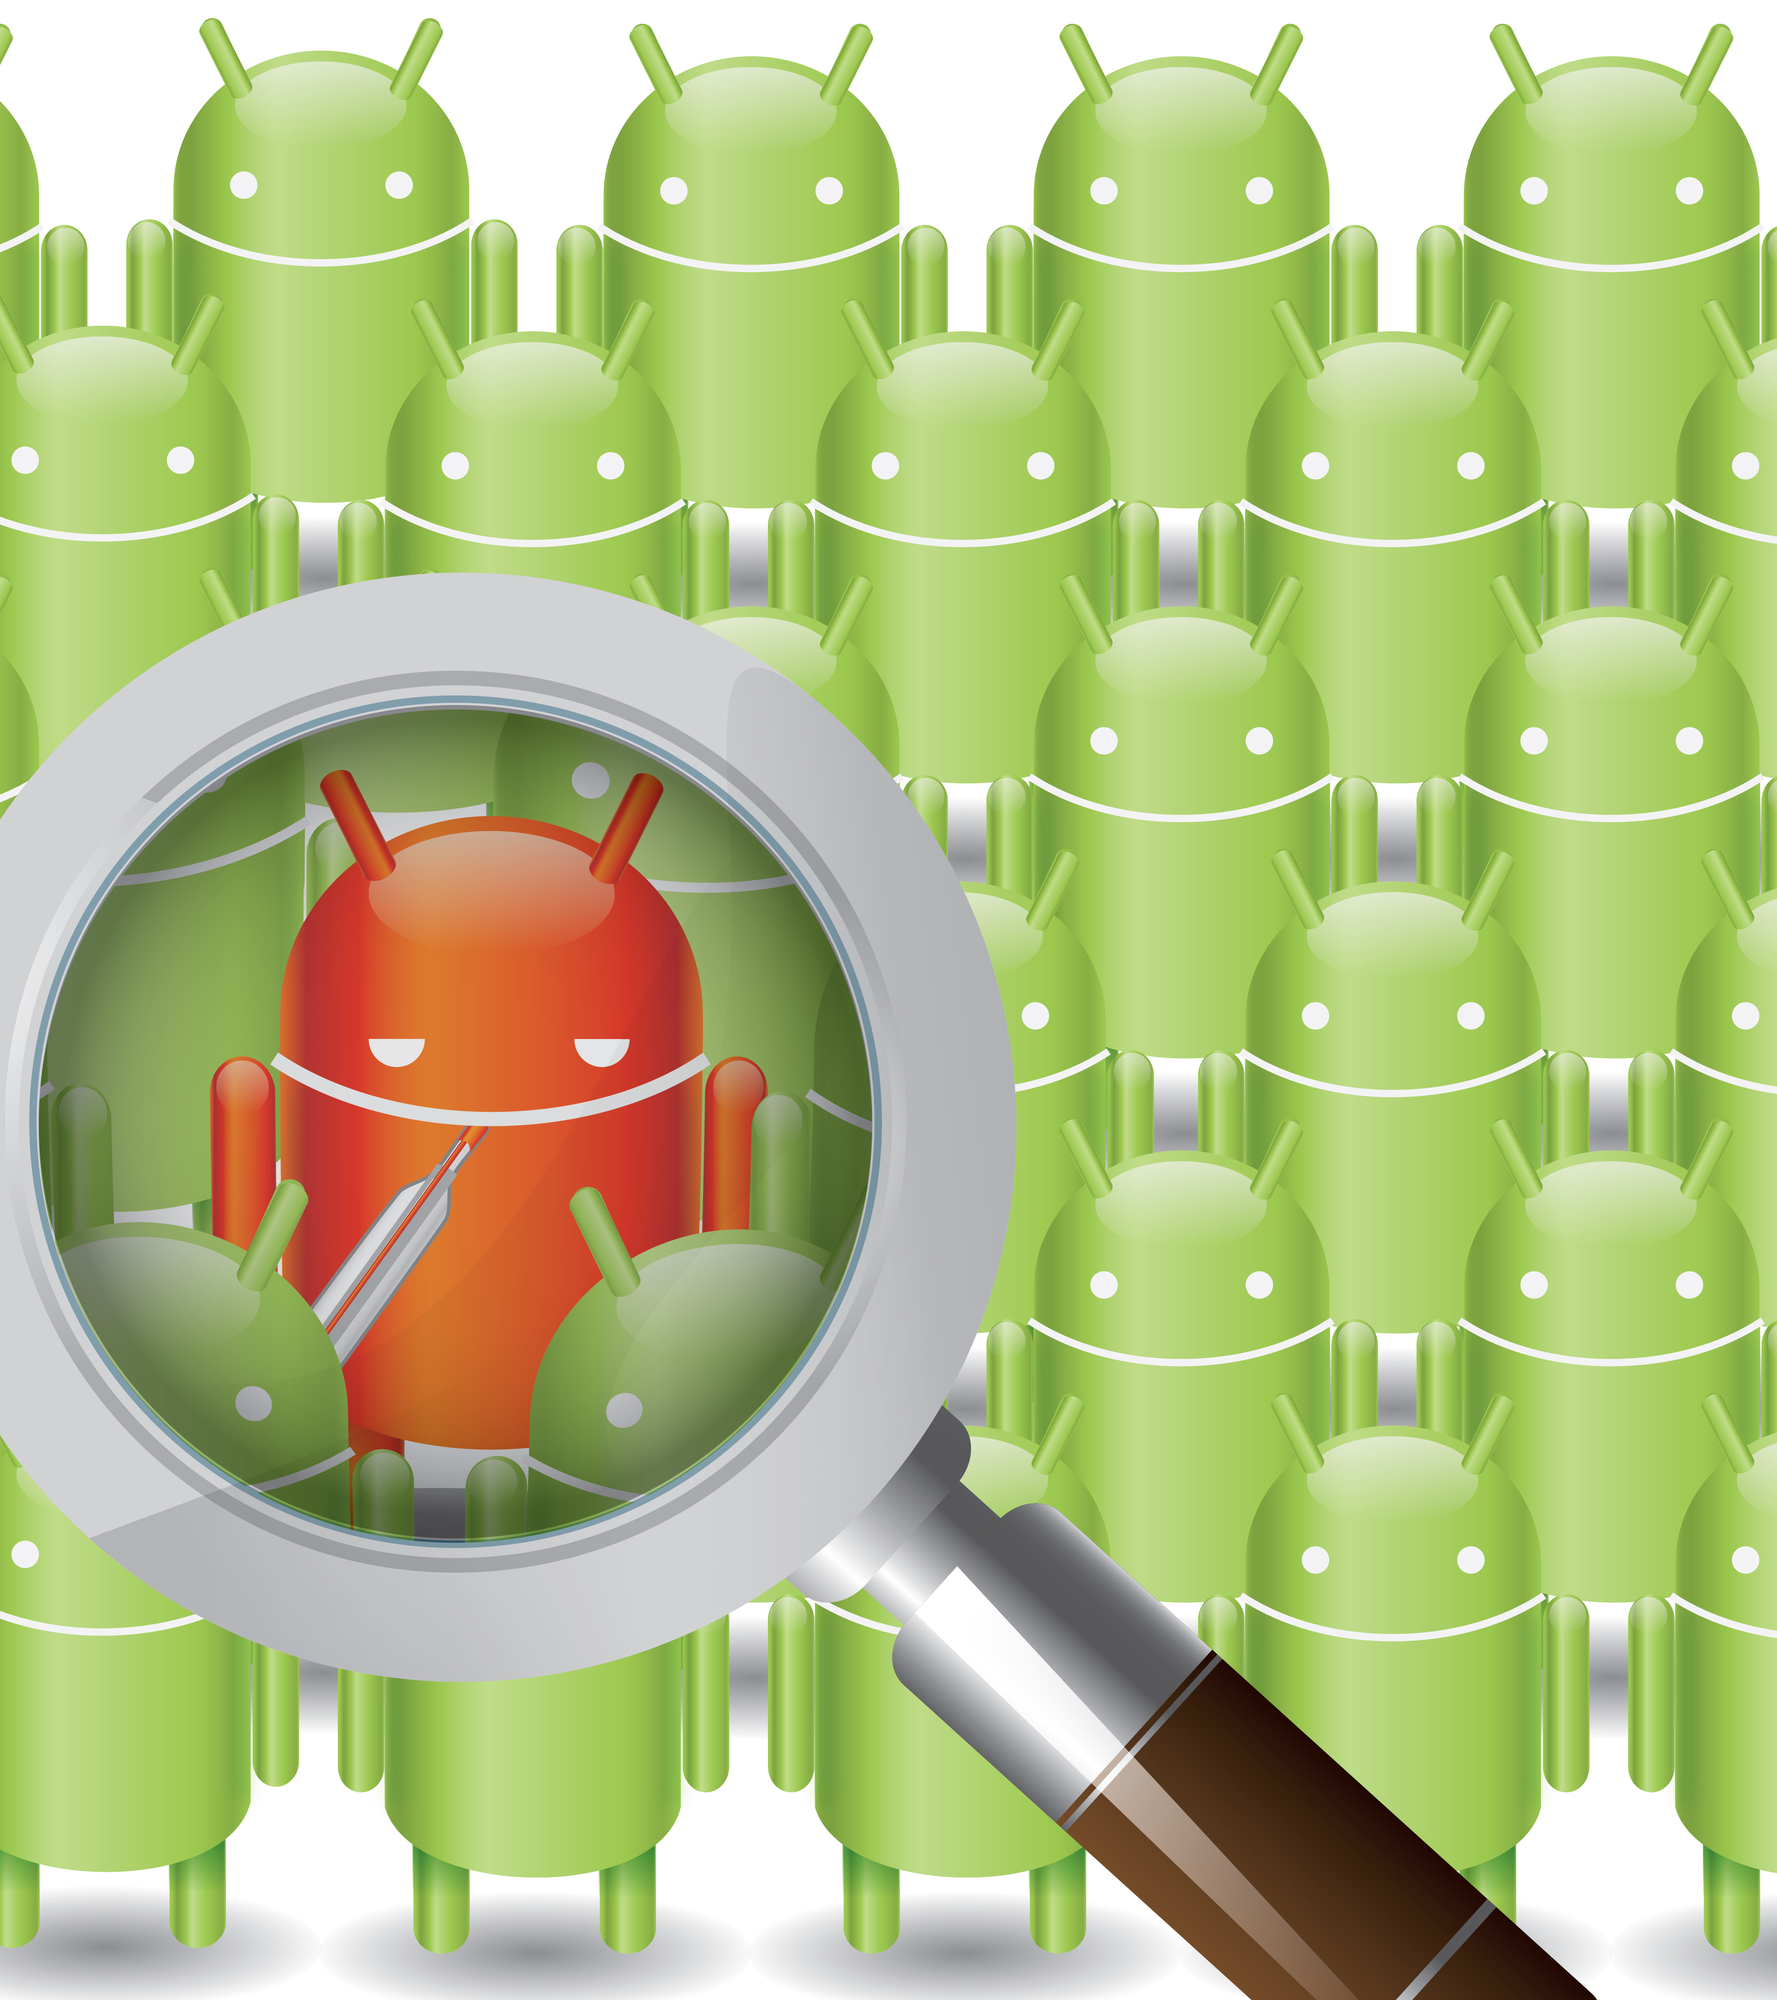 android-leaks